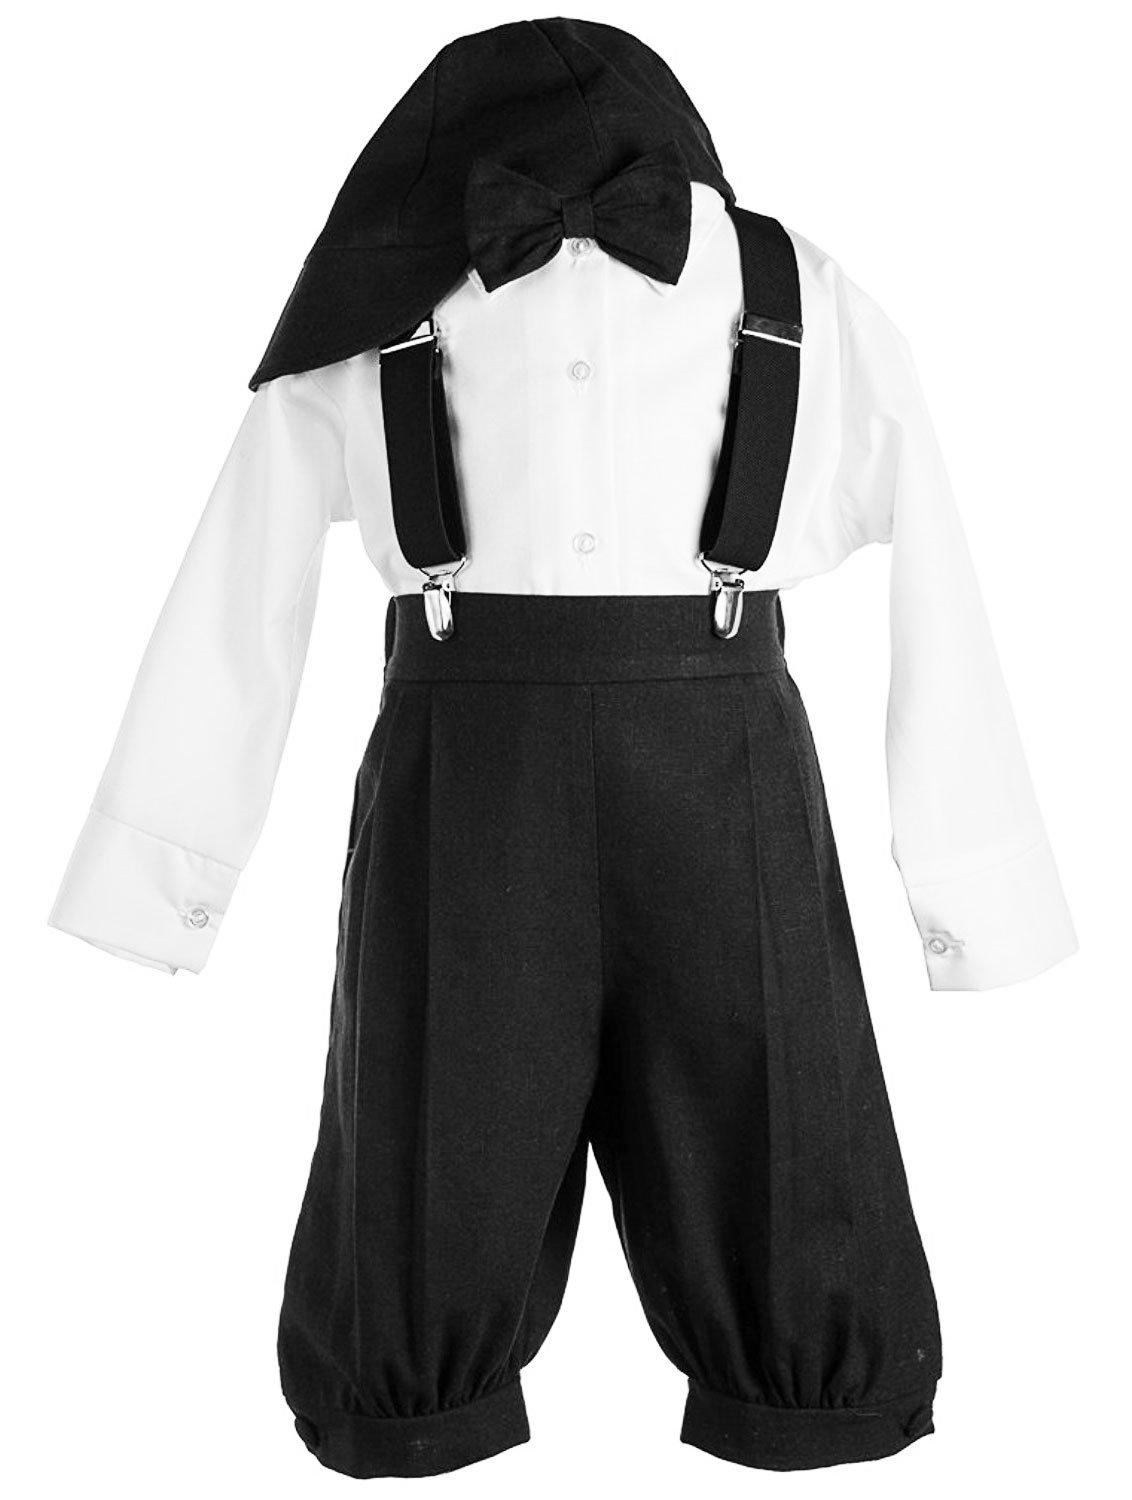 Vintage Baby Toddler Boys Knickers Suit Set Black White 24M/2T